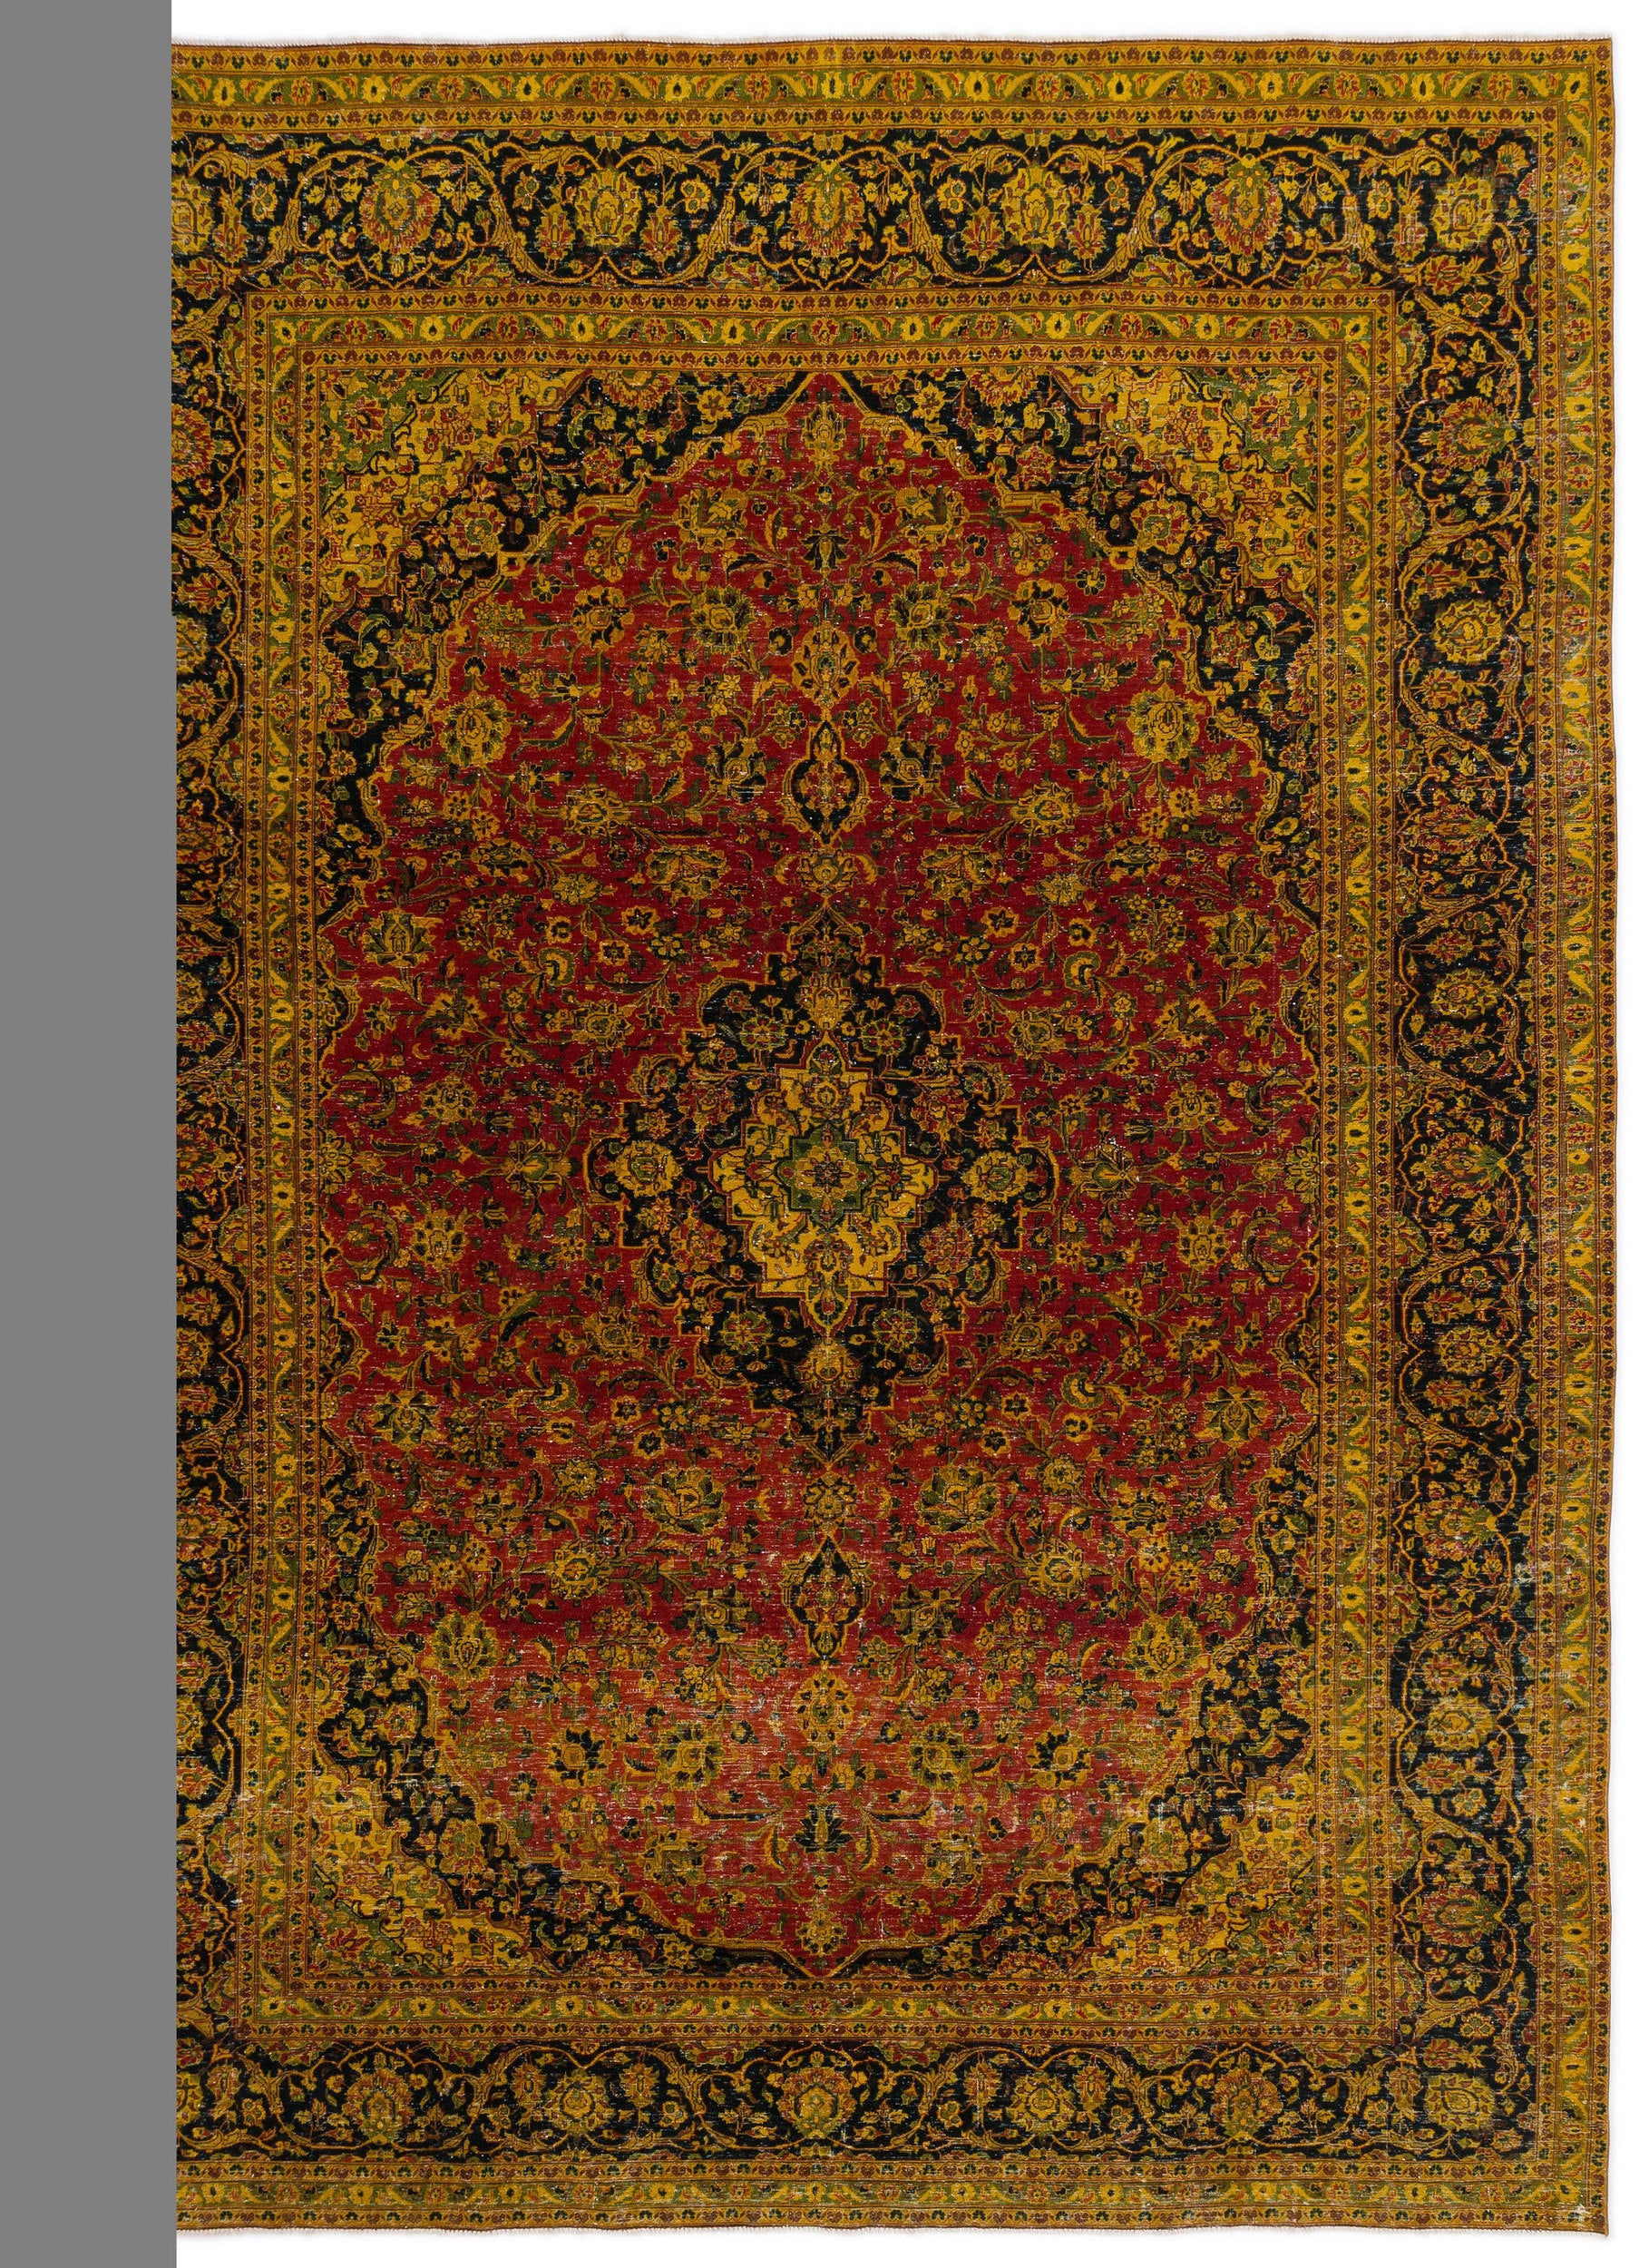 Yellow Over Dyed Vintage XLarge Rug 9'3'' x 9'7'' ft 283 x 292 cm